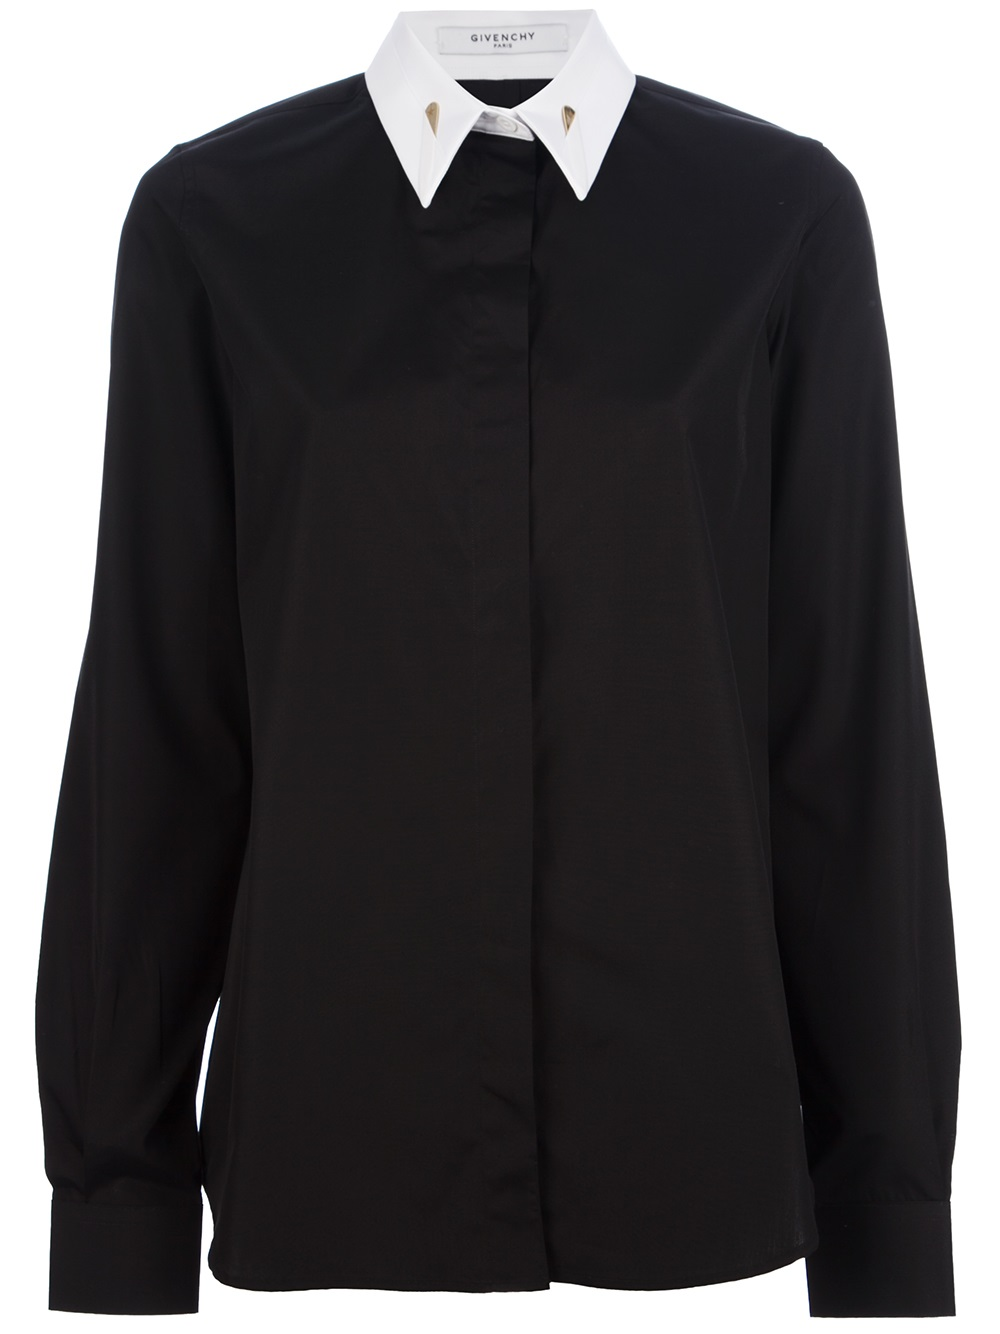 Givenchy Contrast Collar Shirt in Black | Lyst